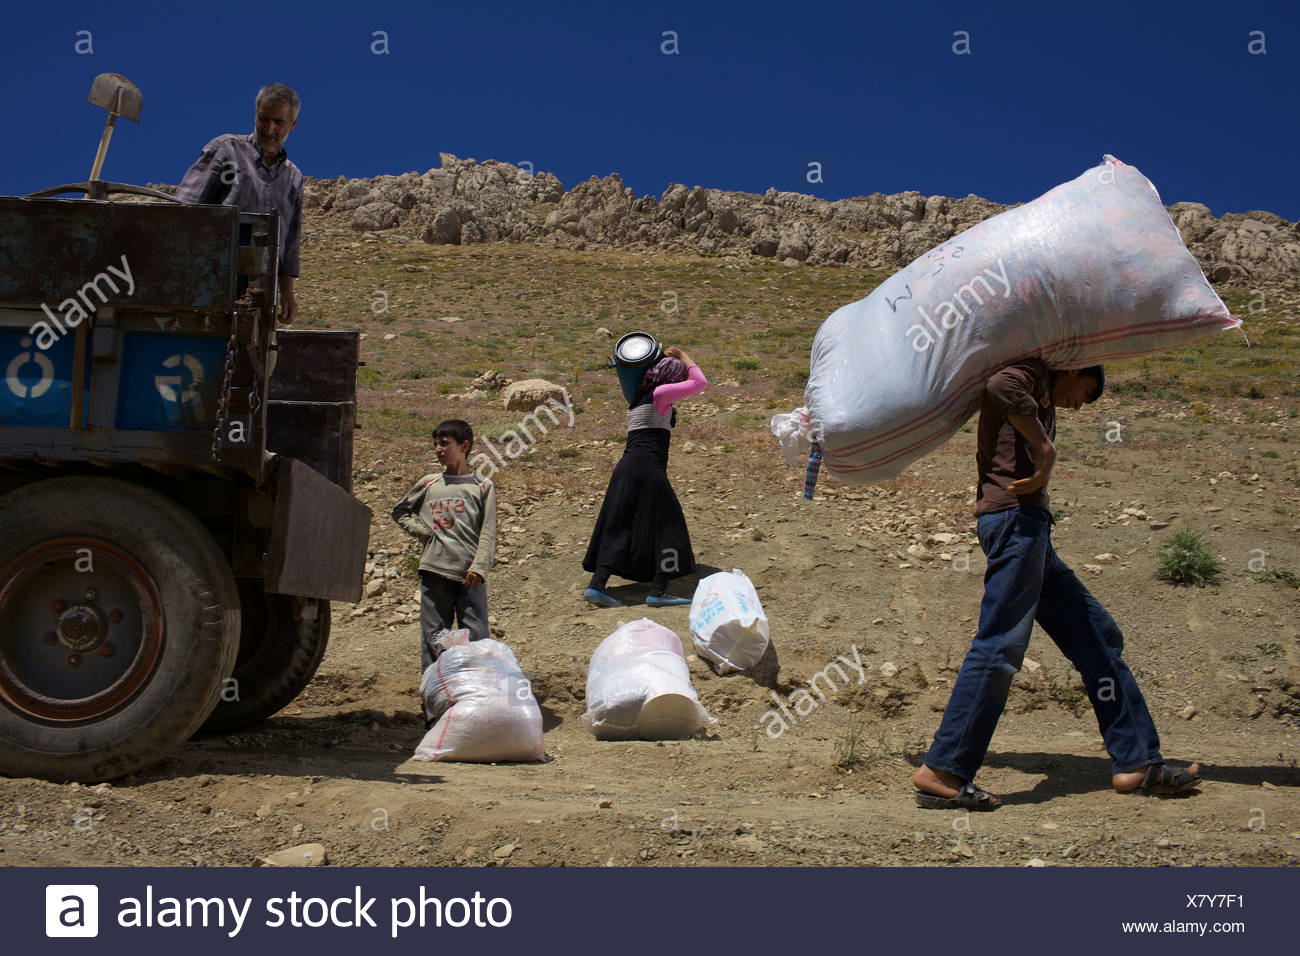 Families carry supplies and household items to their summer home. - Stock Image